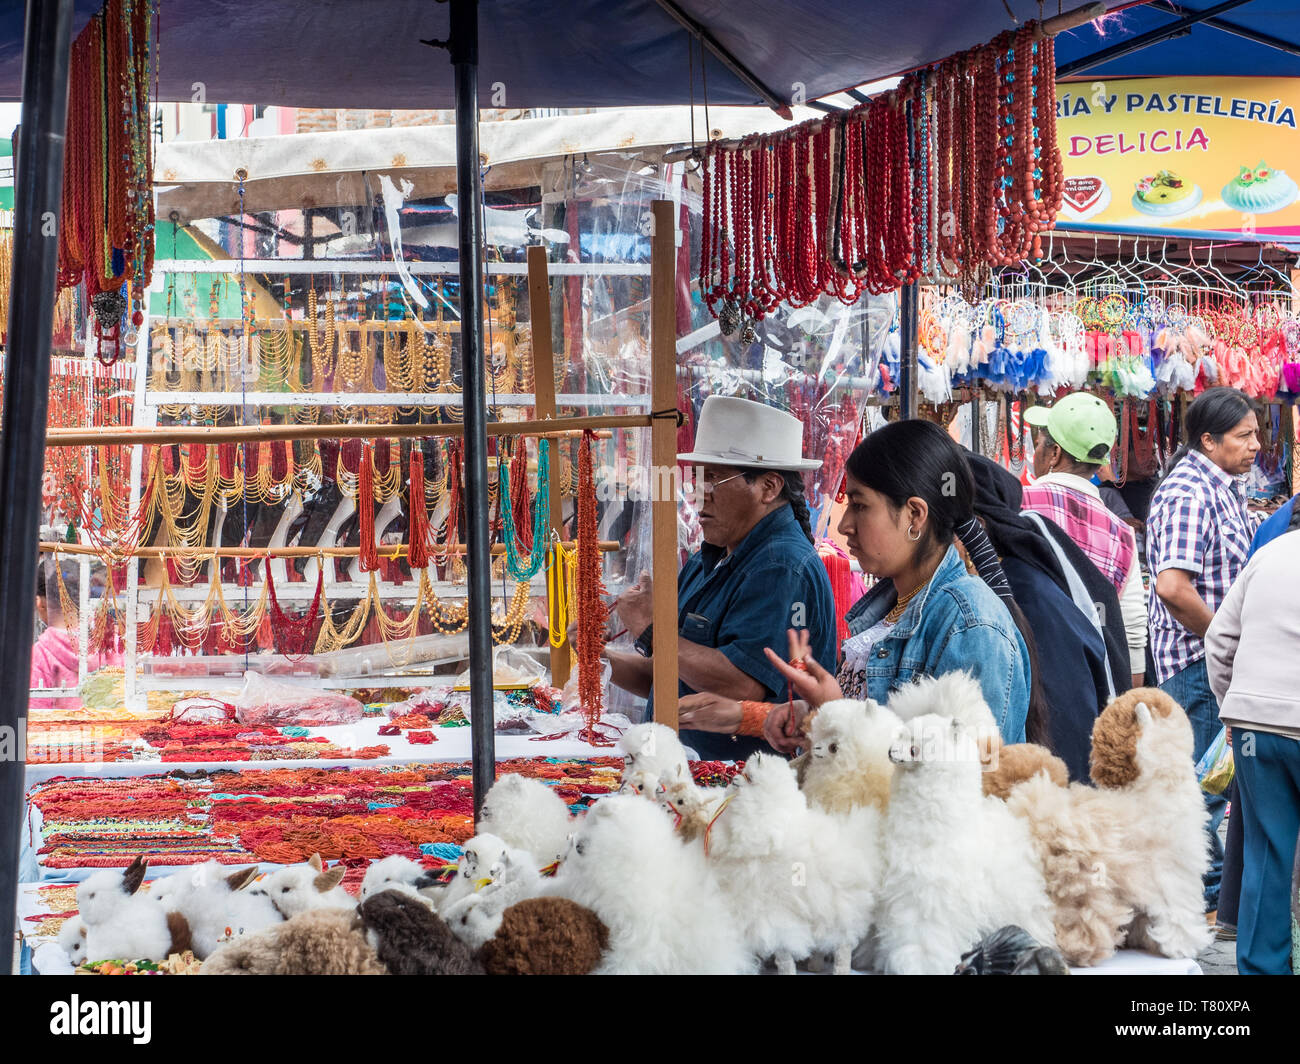 Goods for sale, market, Plaza de los Ponchos, Otavalo, Ecuador, South America - Stock Image